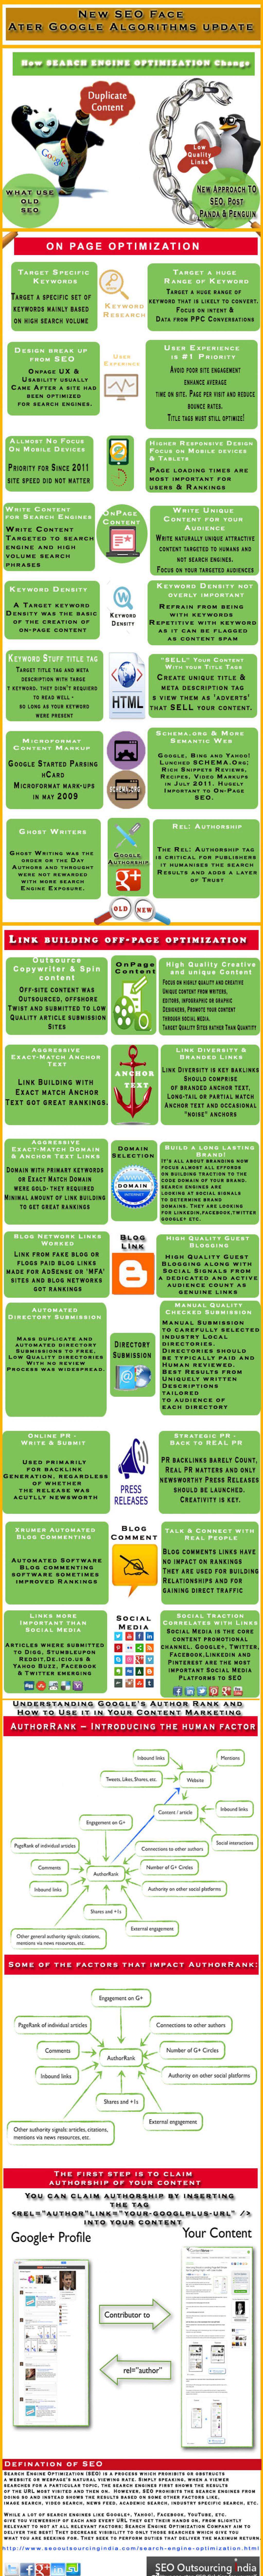 Search Engine Optimization India  Infographic